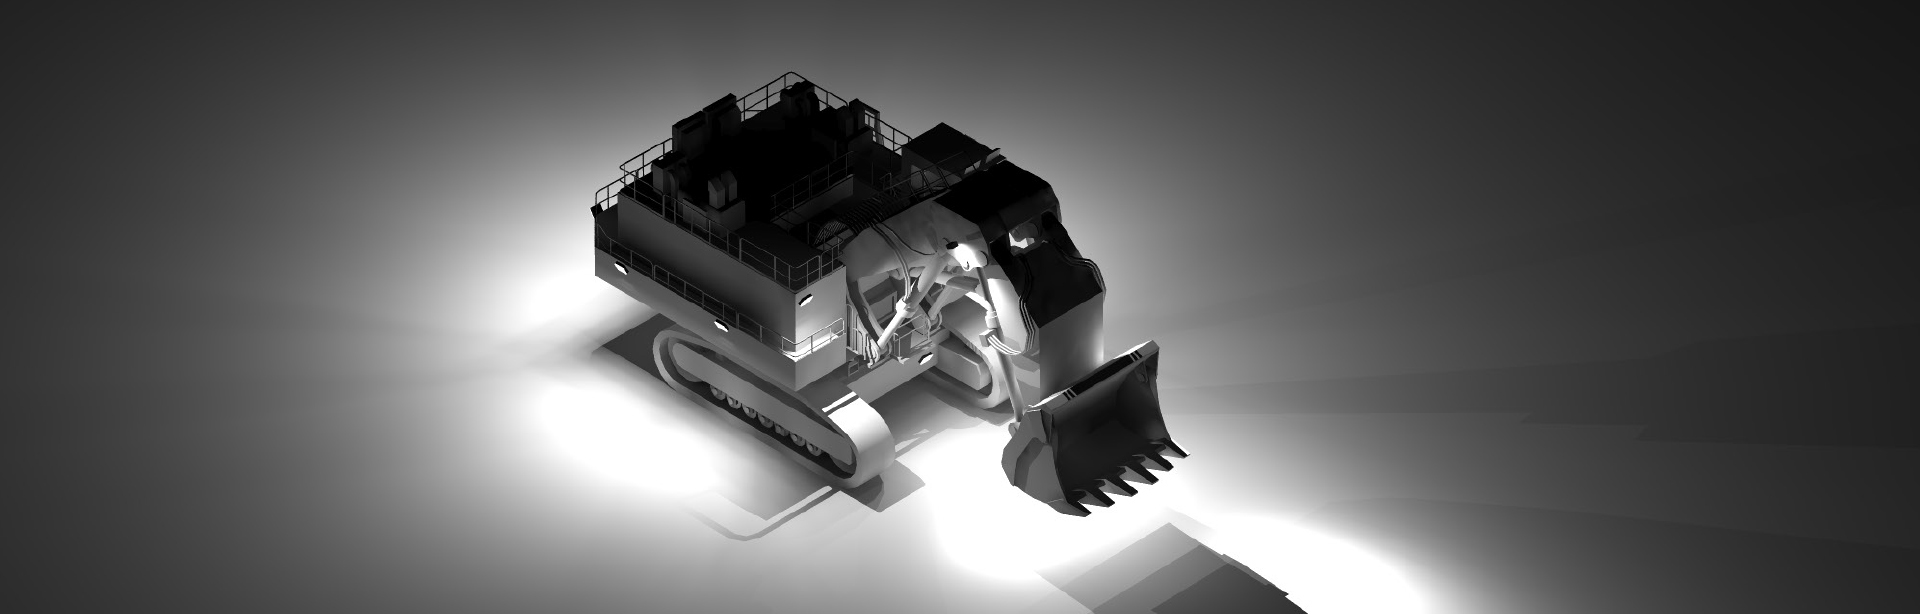 Look through this Lighting Design Simulation Report and explore how Coolon CP56 LED Floodlight improves the light output of a Hitachi EX5500 mining excavator.